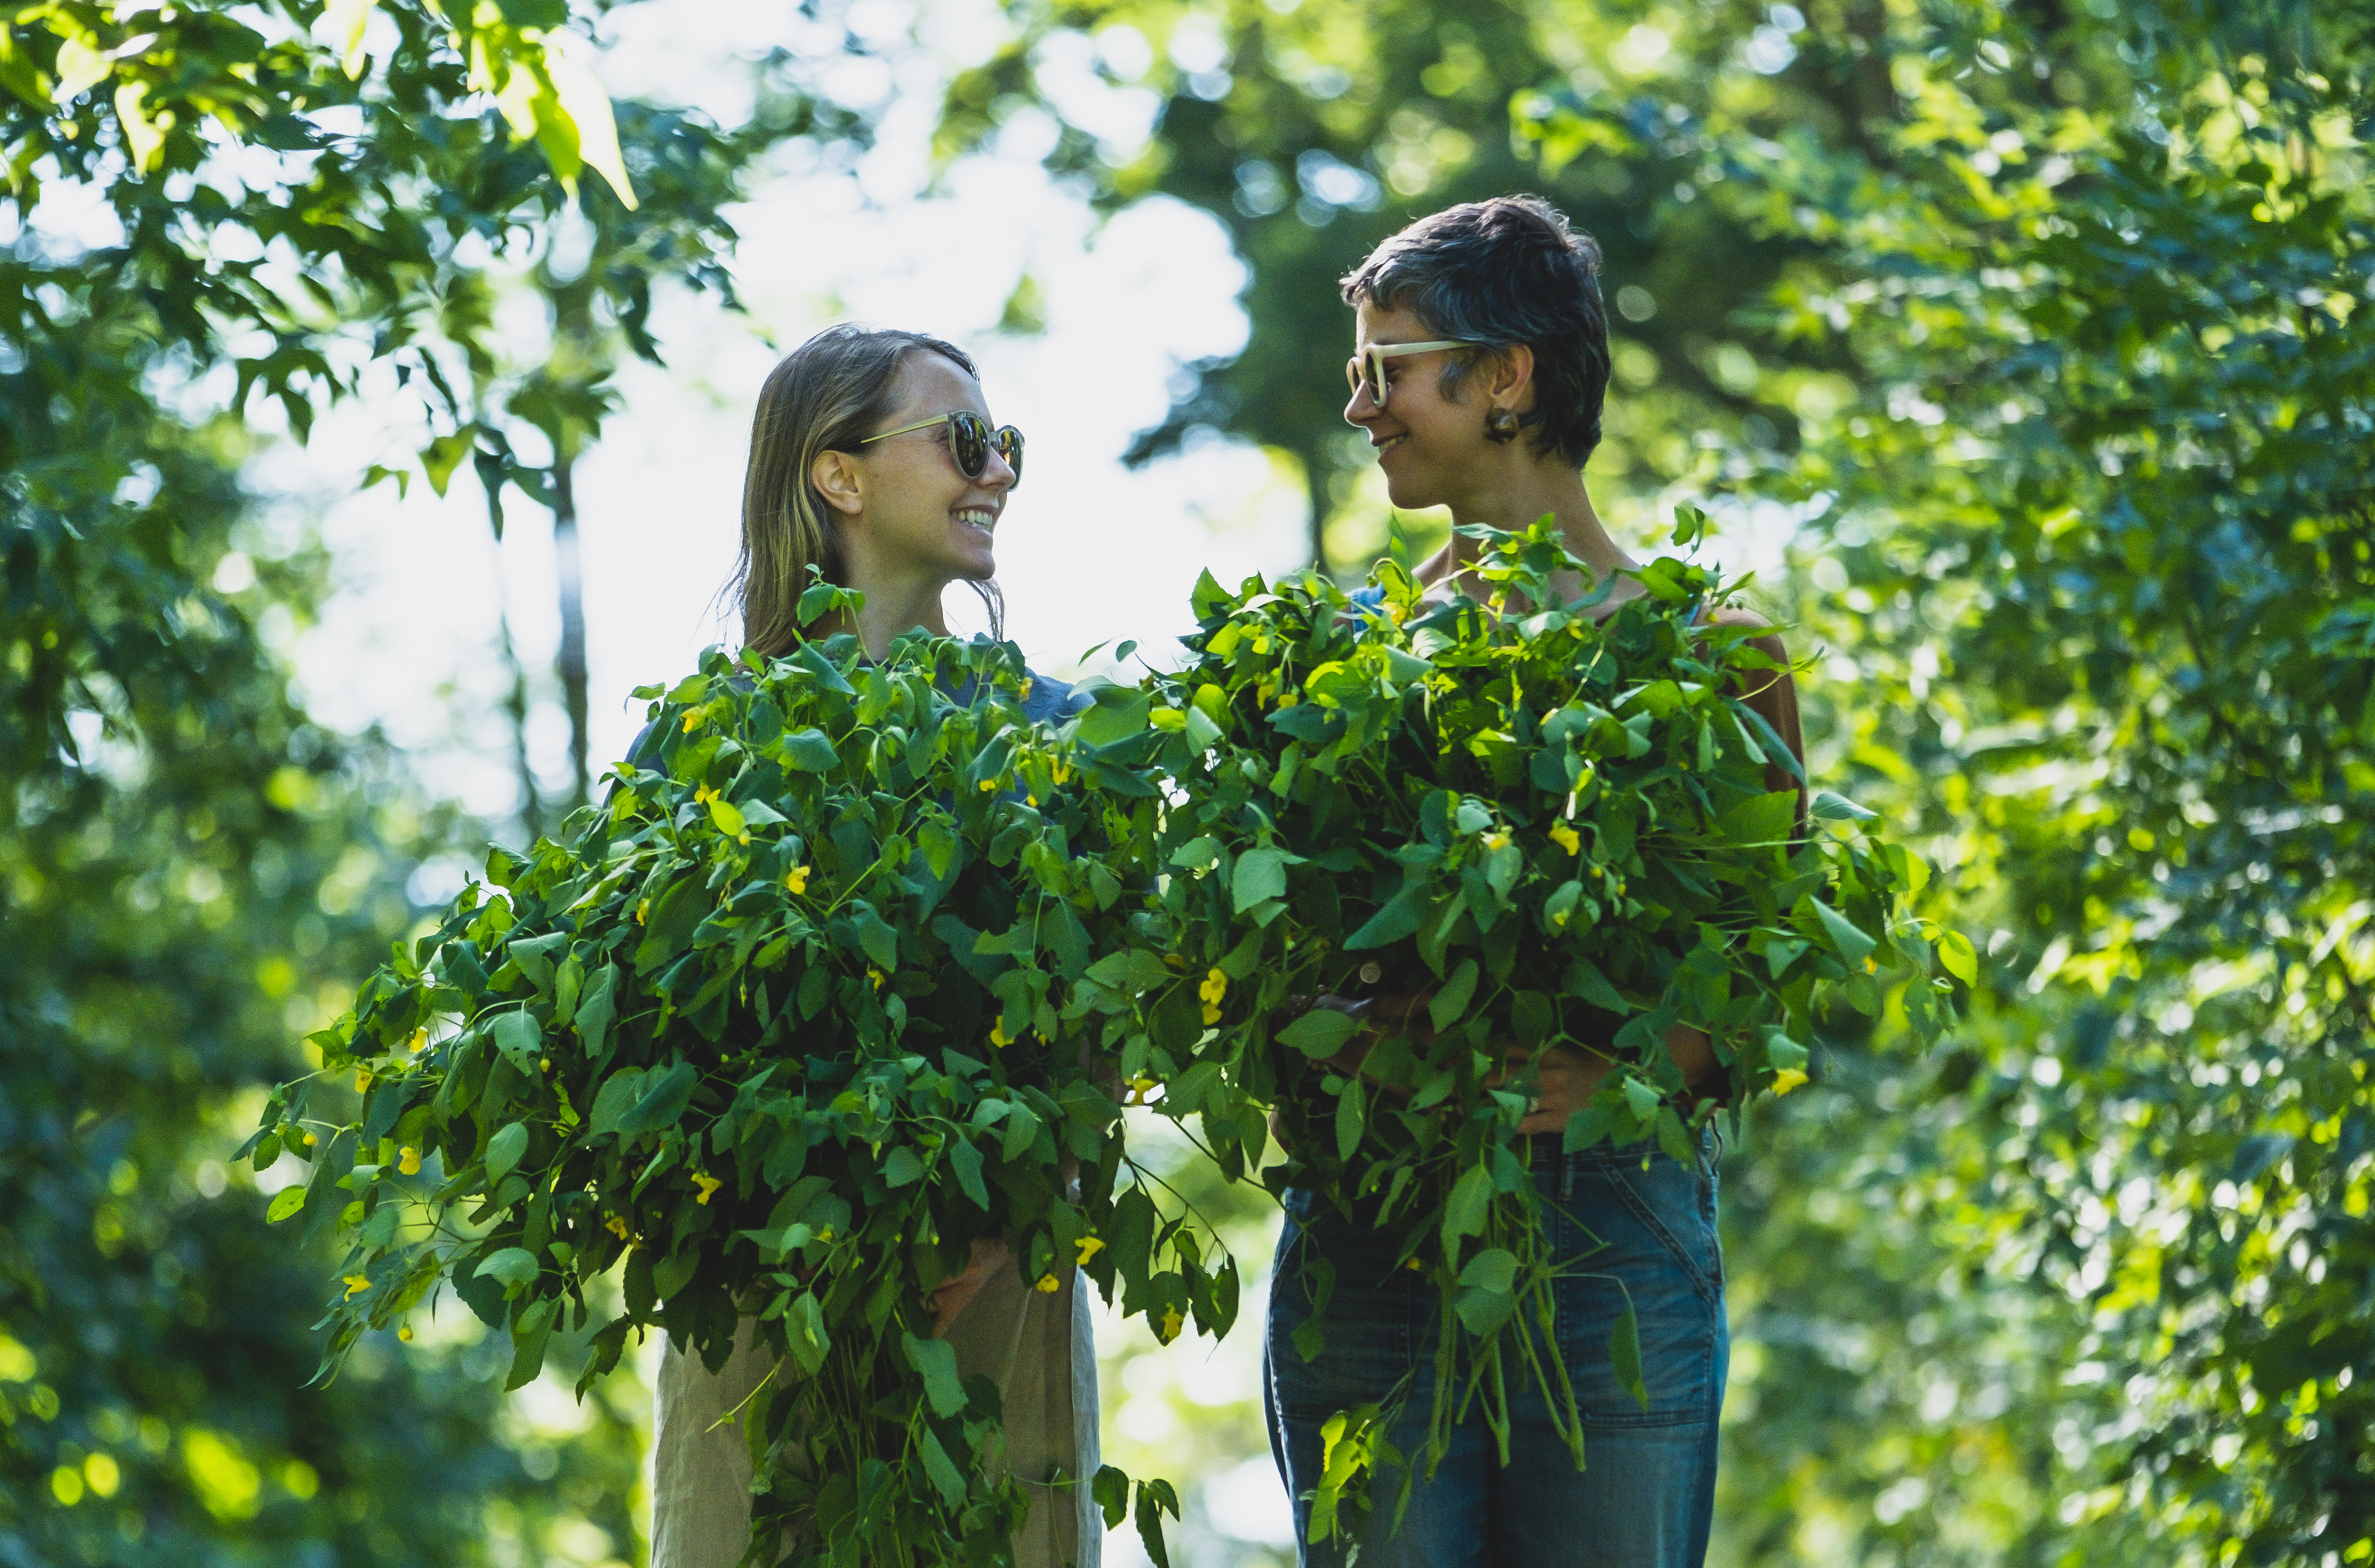 Foraged jewelweed by Hejny and Sardelis